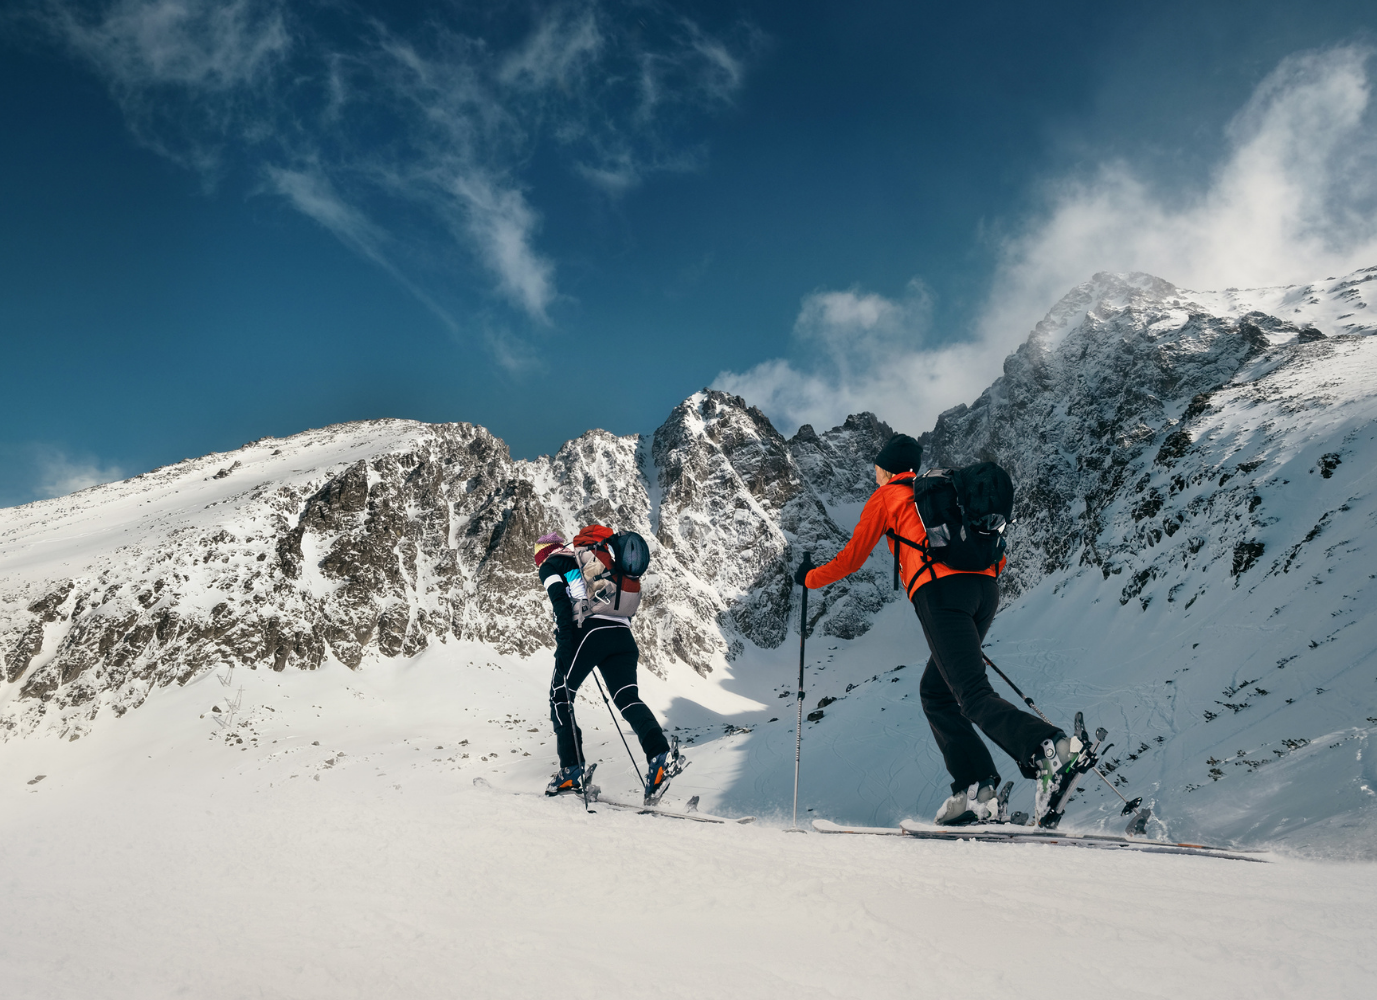 Two women skiing before huge mountains.